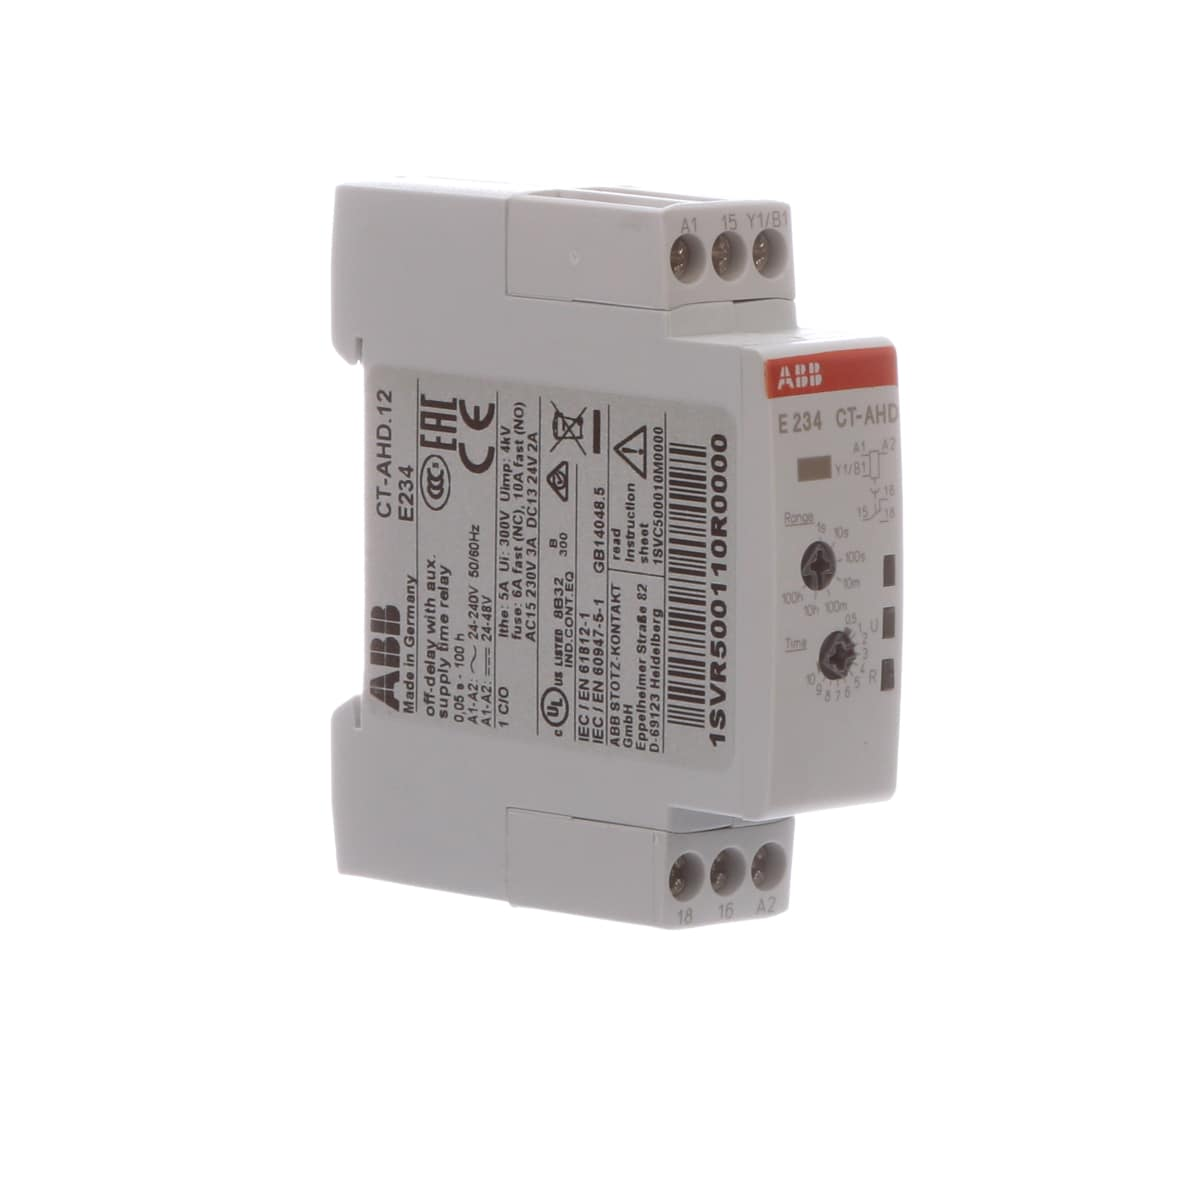 Abb 1svr500110r0000 Time Delay Relay Off Din Rail Spdt Timer Circuit Close